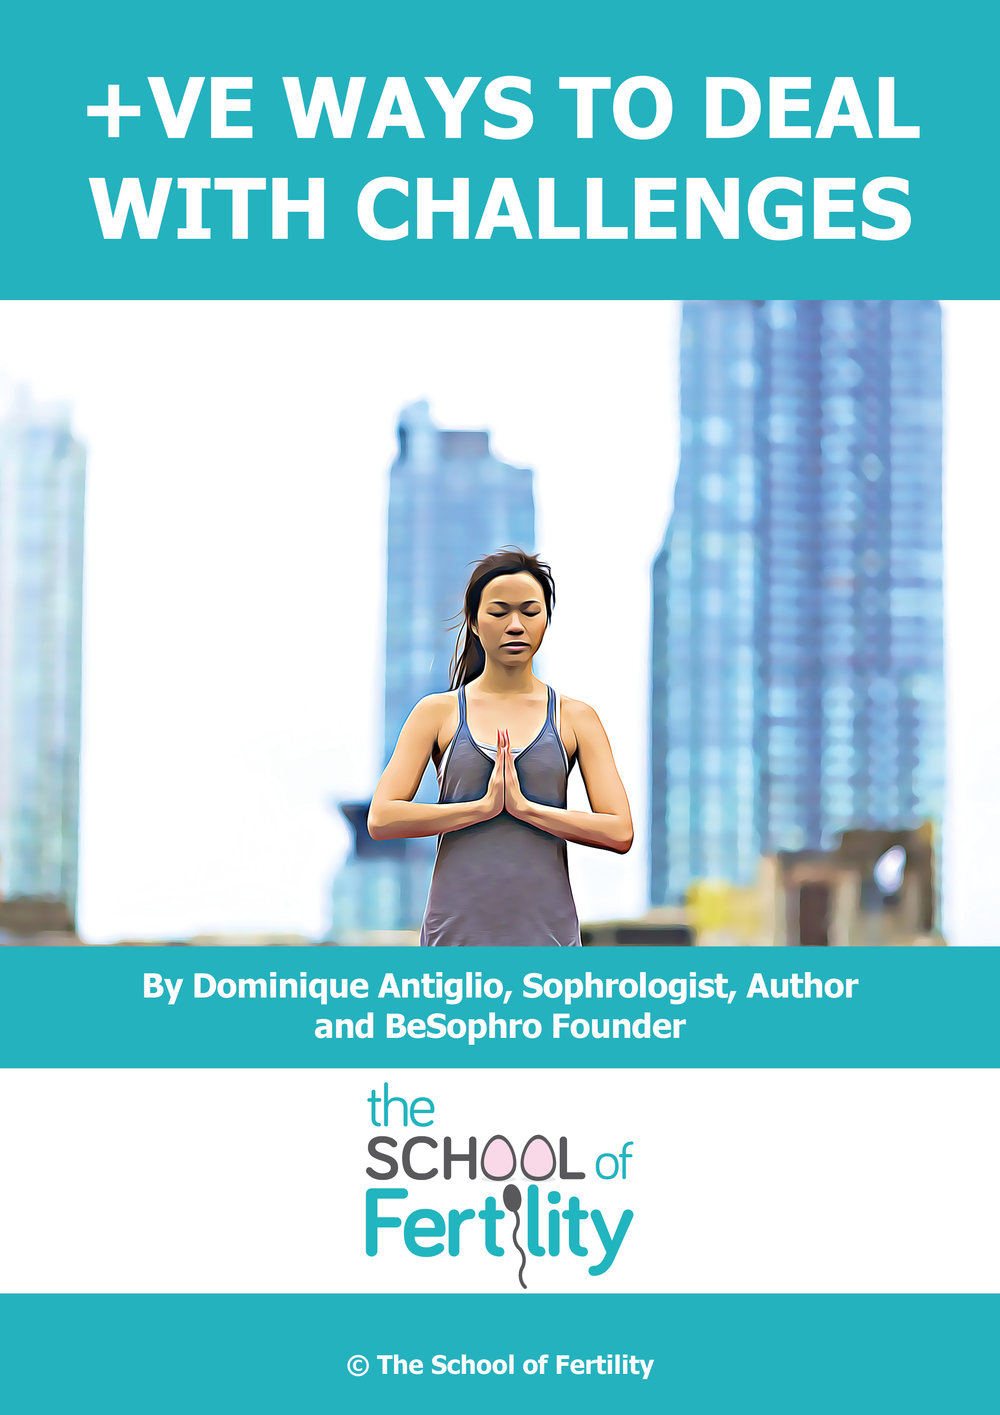 Positive ways to deal with challenges (c) The School of Fertility